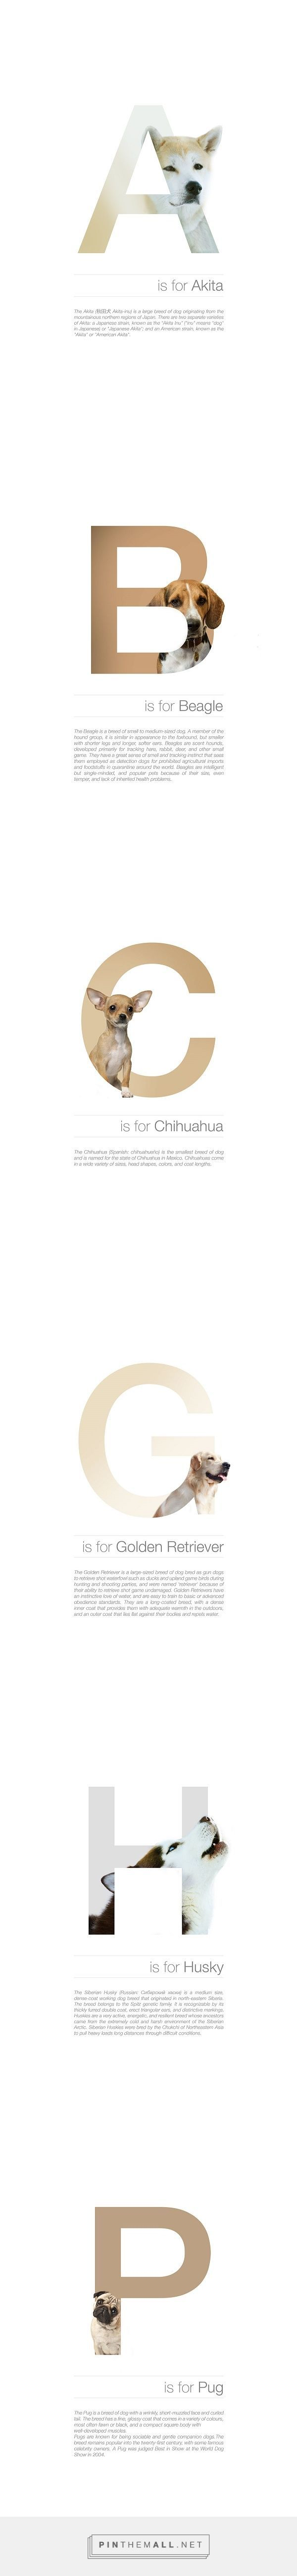 Designer matches letters of the alphabet with different dog breeds